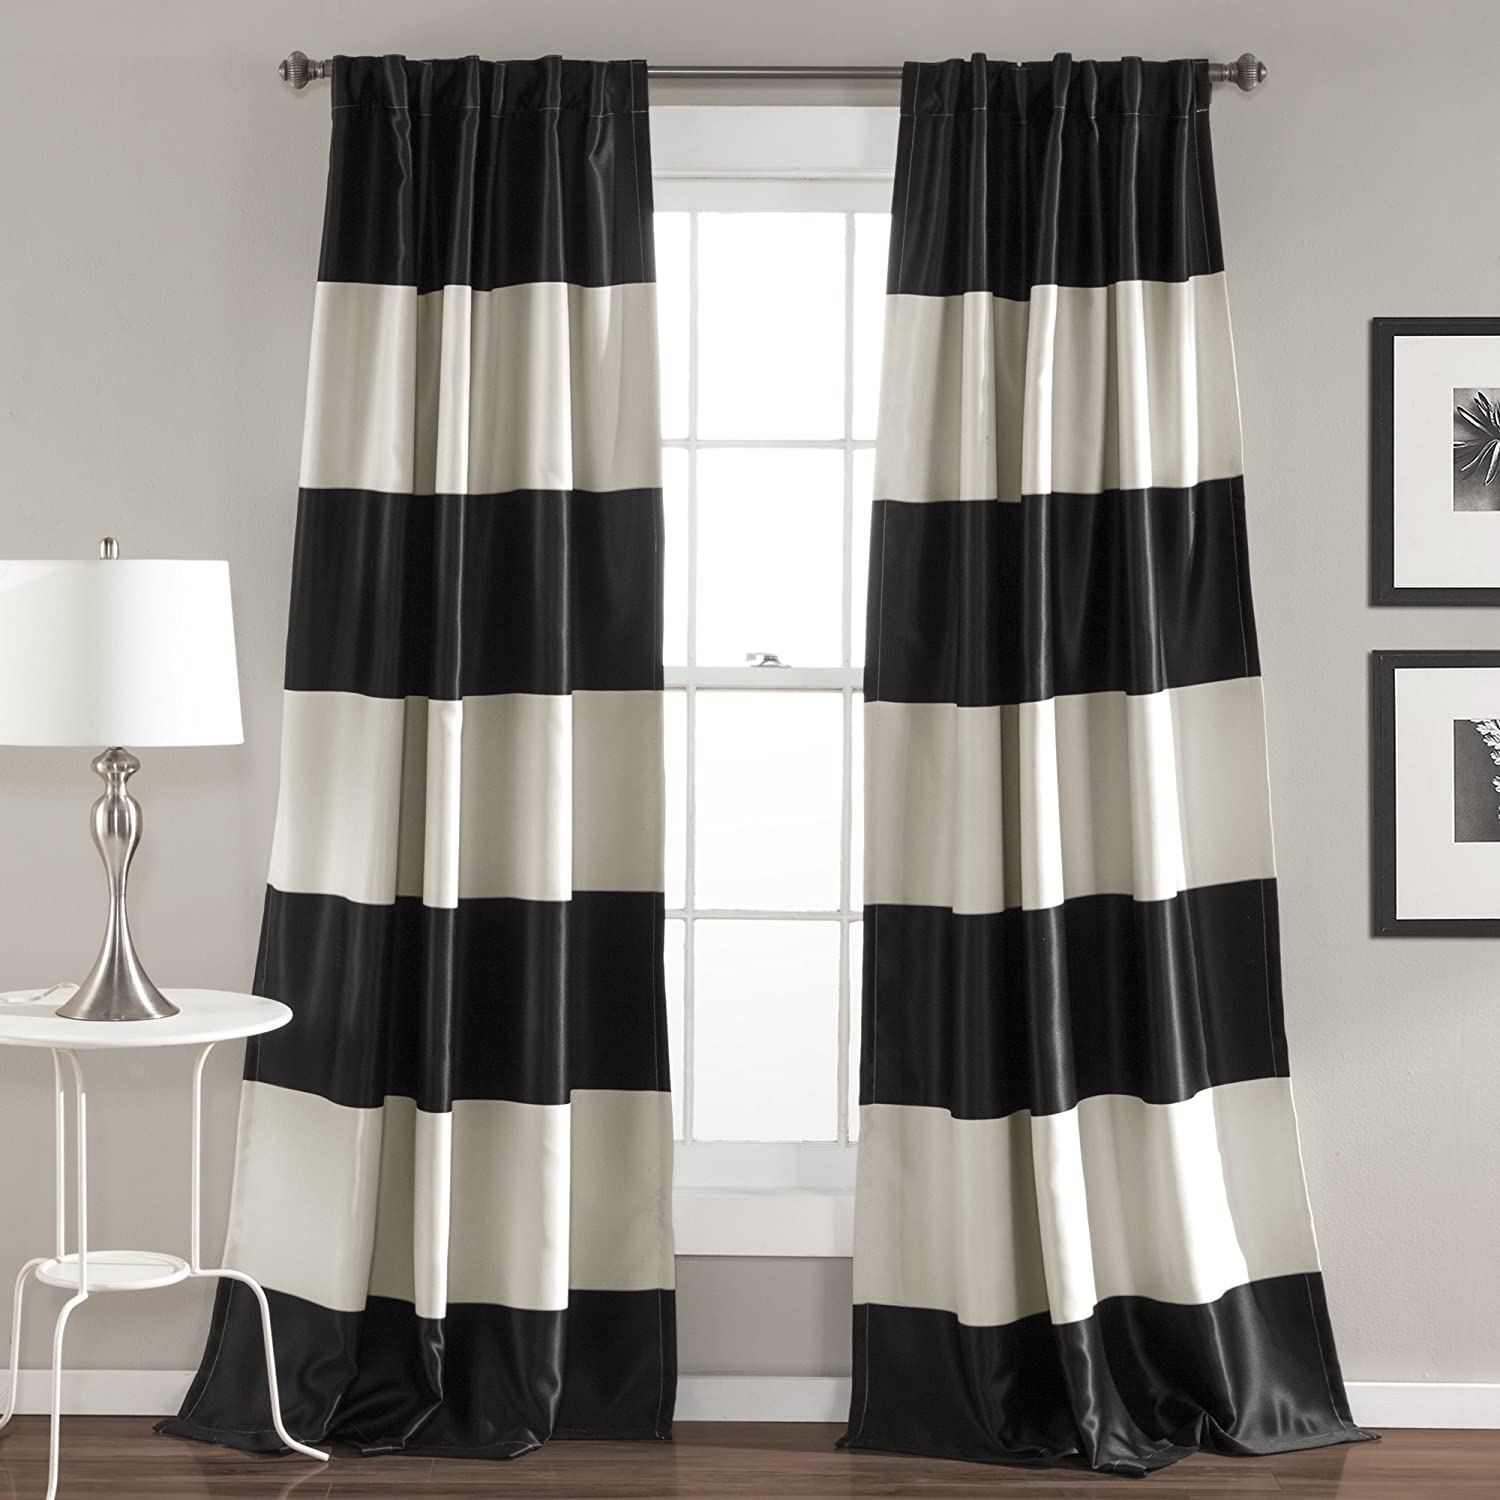 drapes window fabric curtainsblack black curtains free ont shower floralains size full and white cheap ideas images long singular of floral texture curtain modern picture